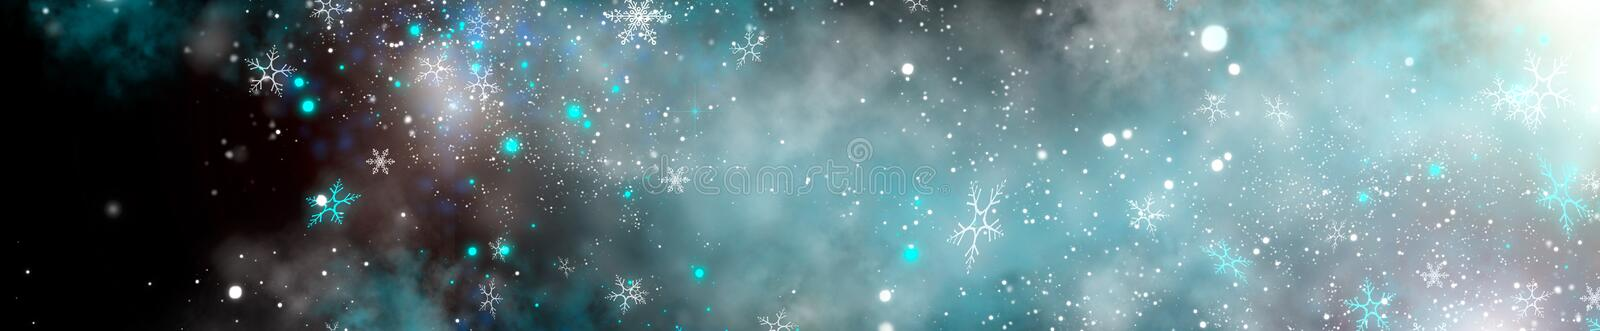 Winter Christmas and New Year glittering snow flakes swirl on black bokeh background, backdrop with sparkling blue stars. Holiday garland, magic glowing stars stock photo